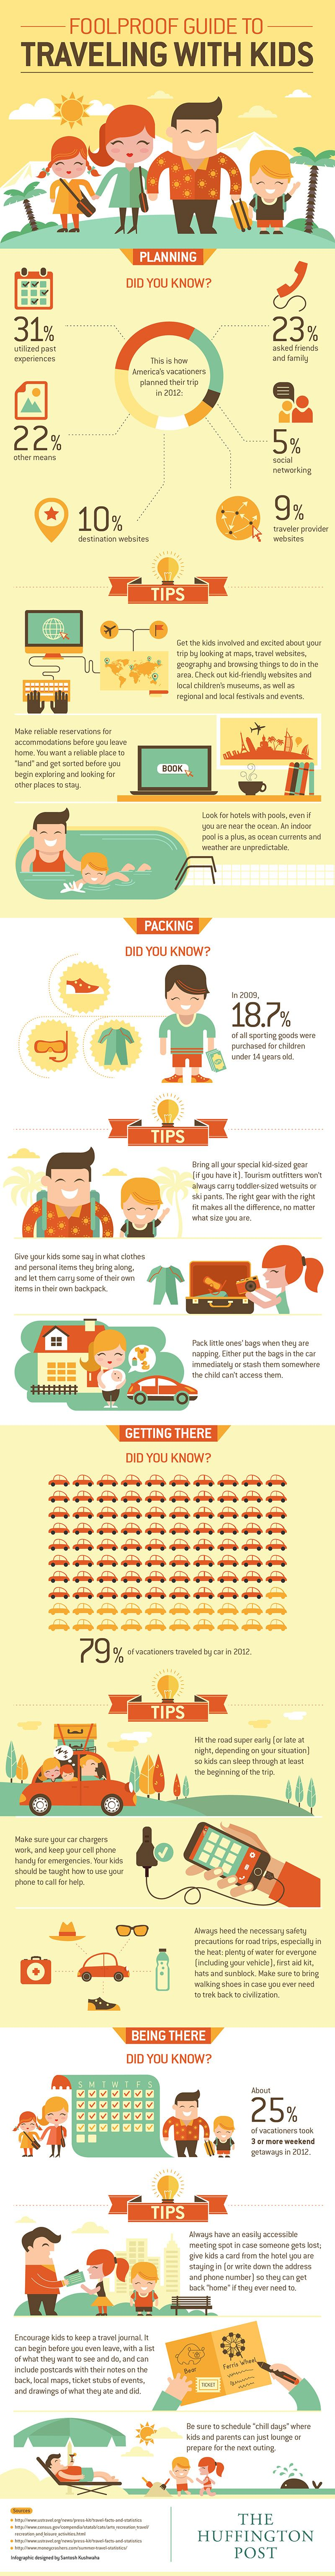 The Foolproof Guide To Traveling With Kids #infographic